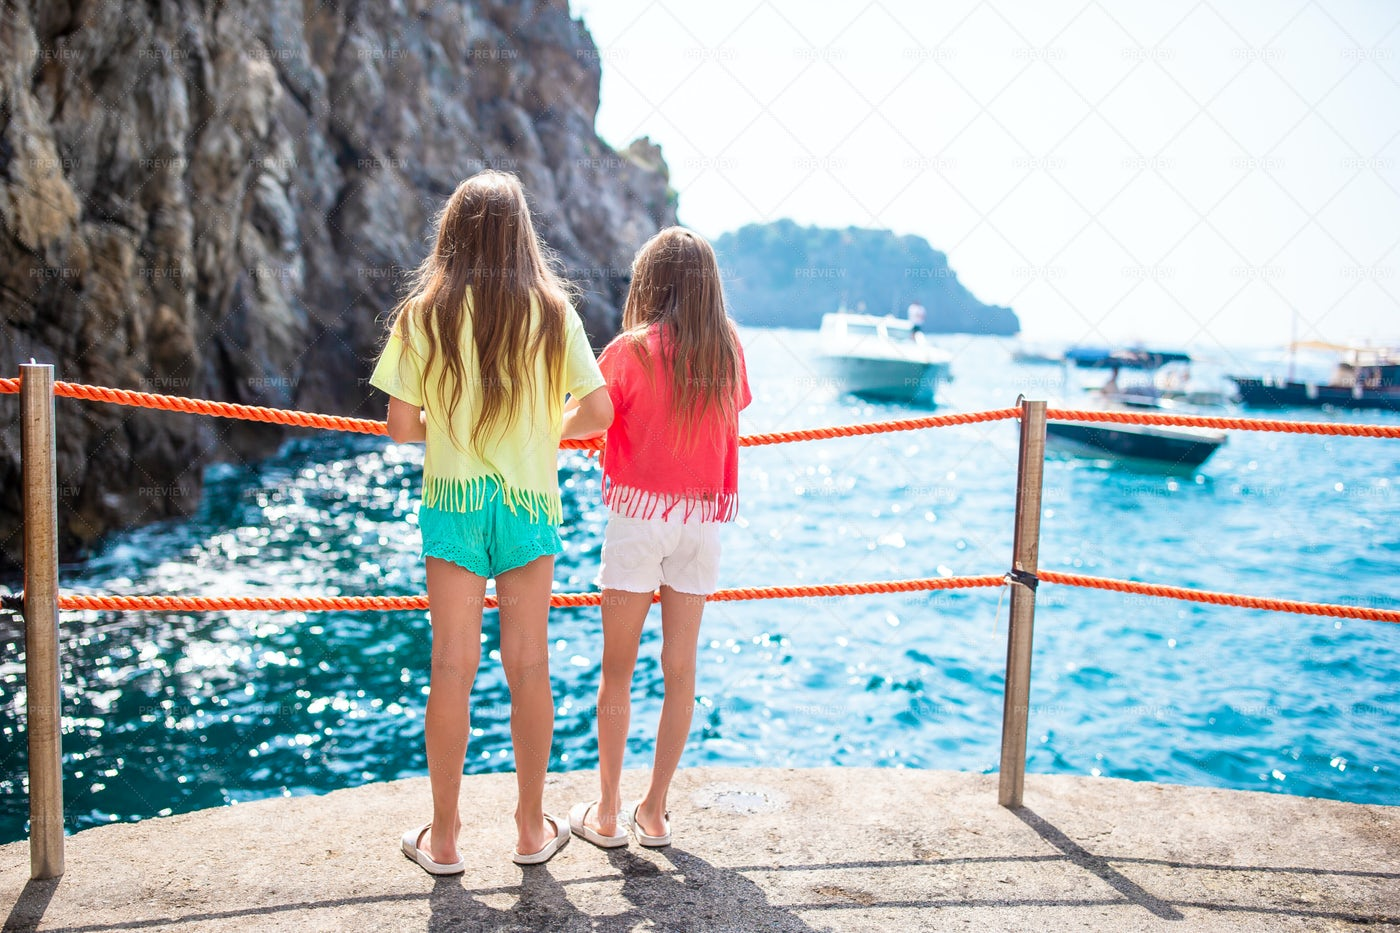 Little Girls In Emerald Grotto: Stock Photos